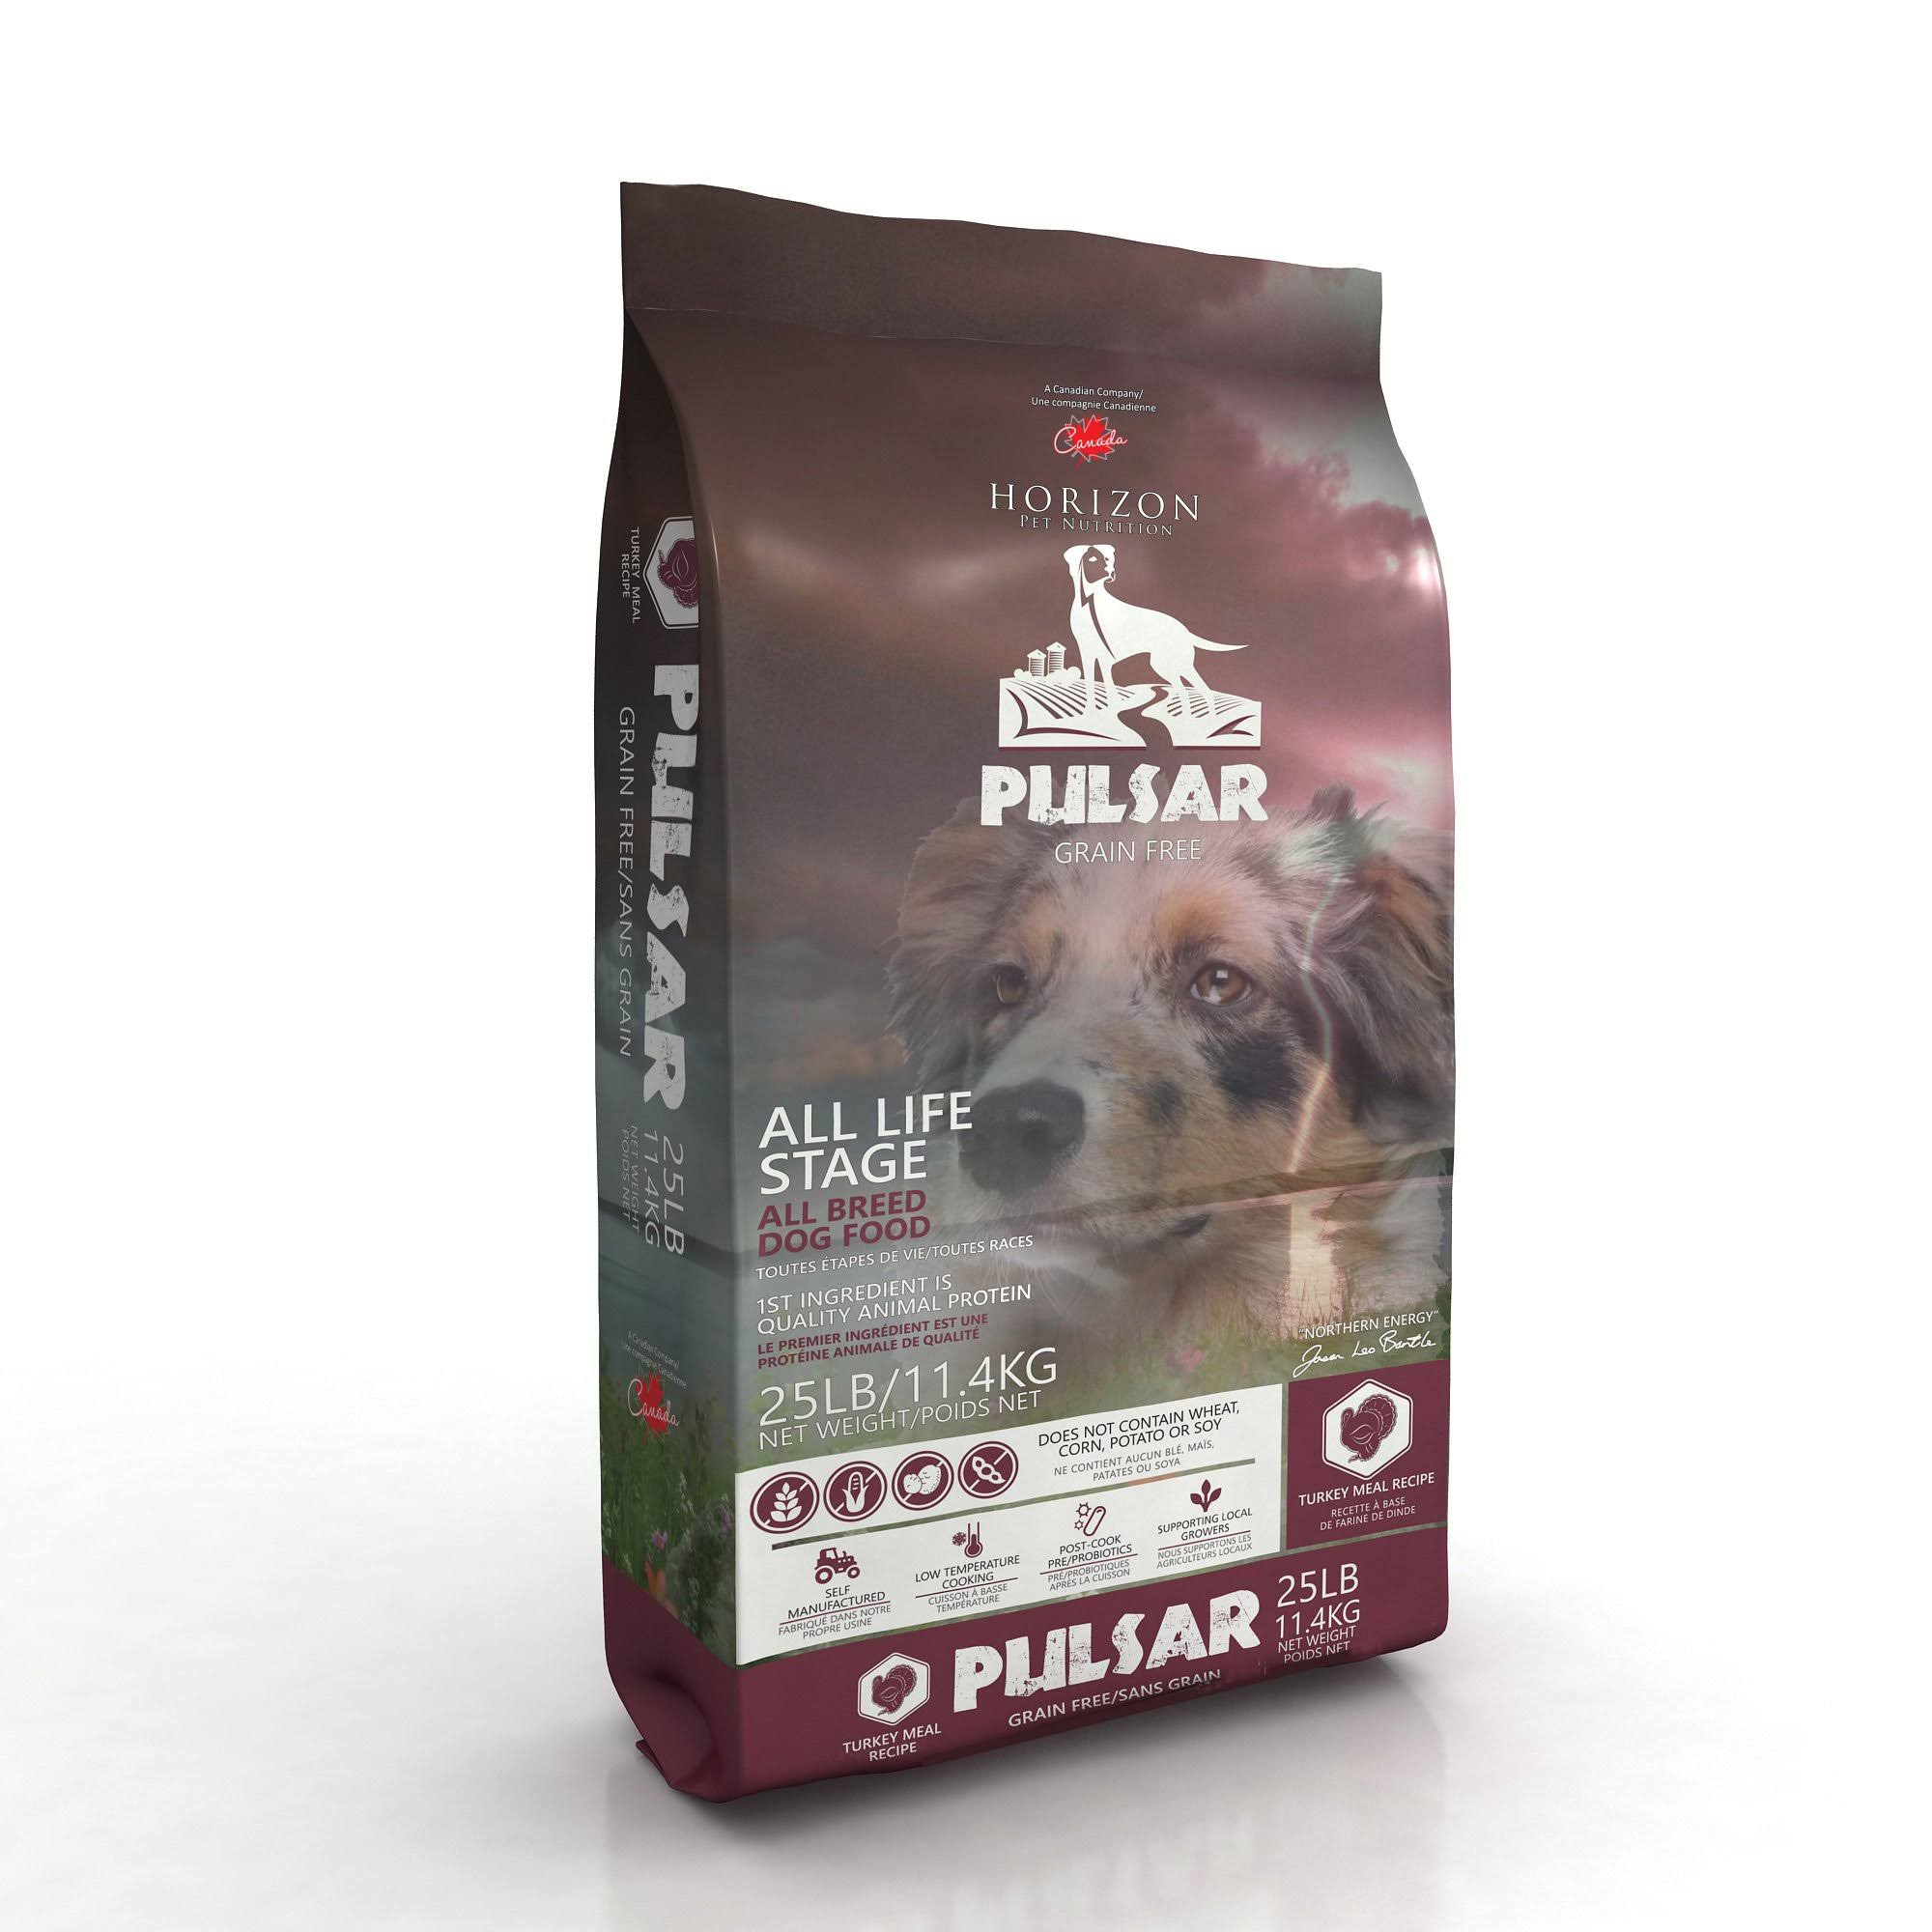 Horizon Pulsar Grain Free Turkey Formula Dry Dog Food - 25 Lbs